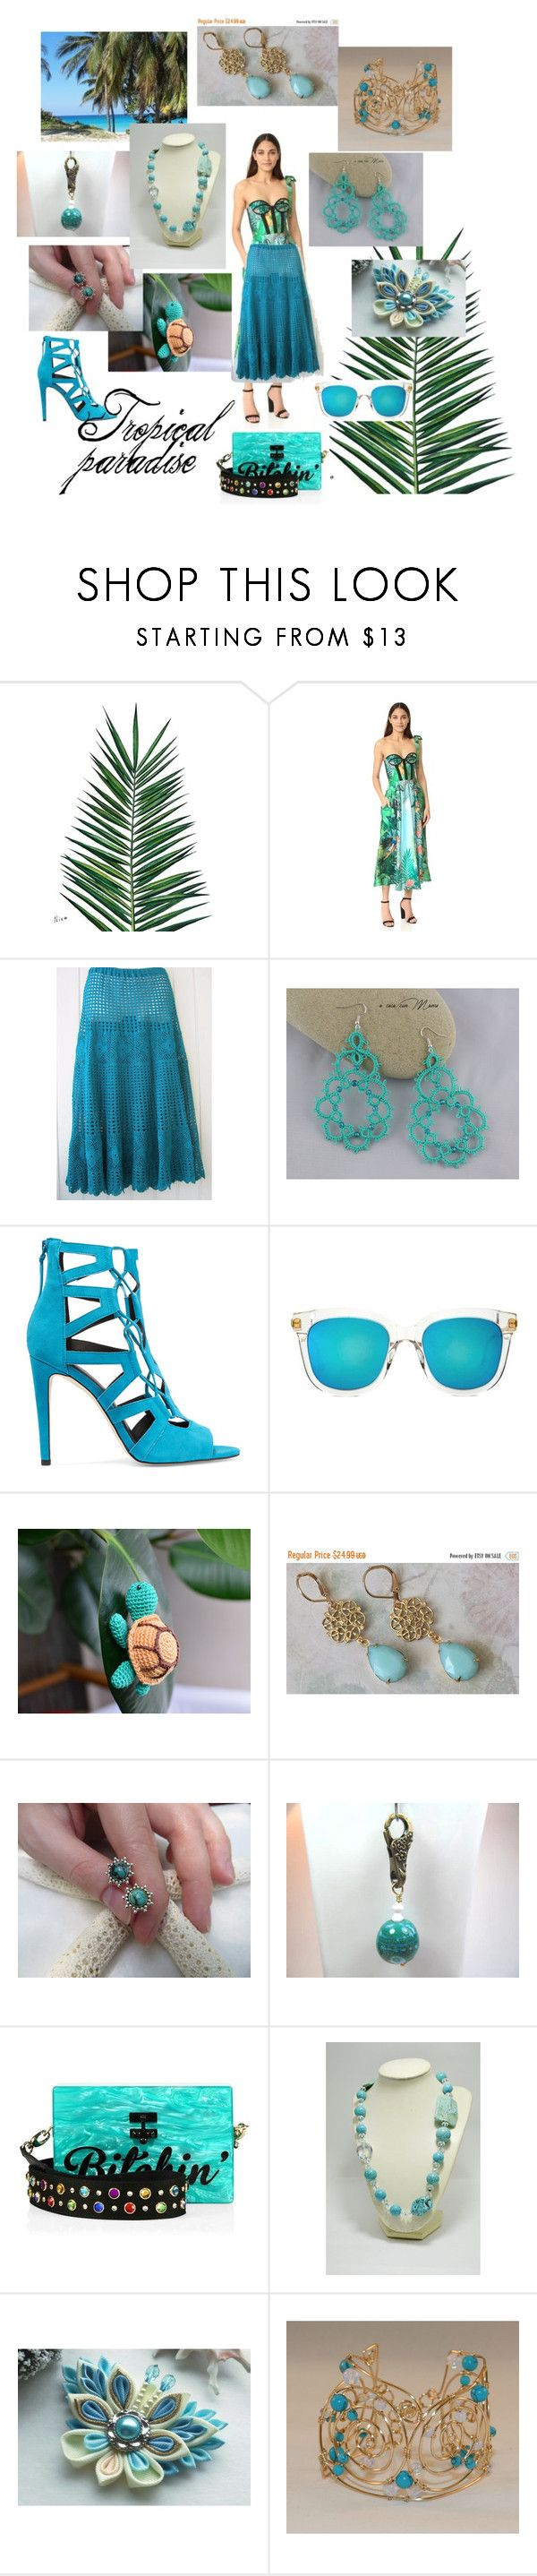 """""""Tropical paradise"""" by varivodamar ❤ liked on Polyvore featuring Nika, Rochas, Rebecca Minkoff, Gentle Monster, Edie Parker and Tela Beauty Organics"""